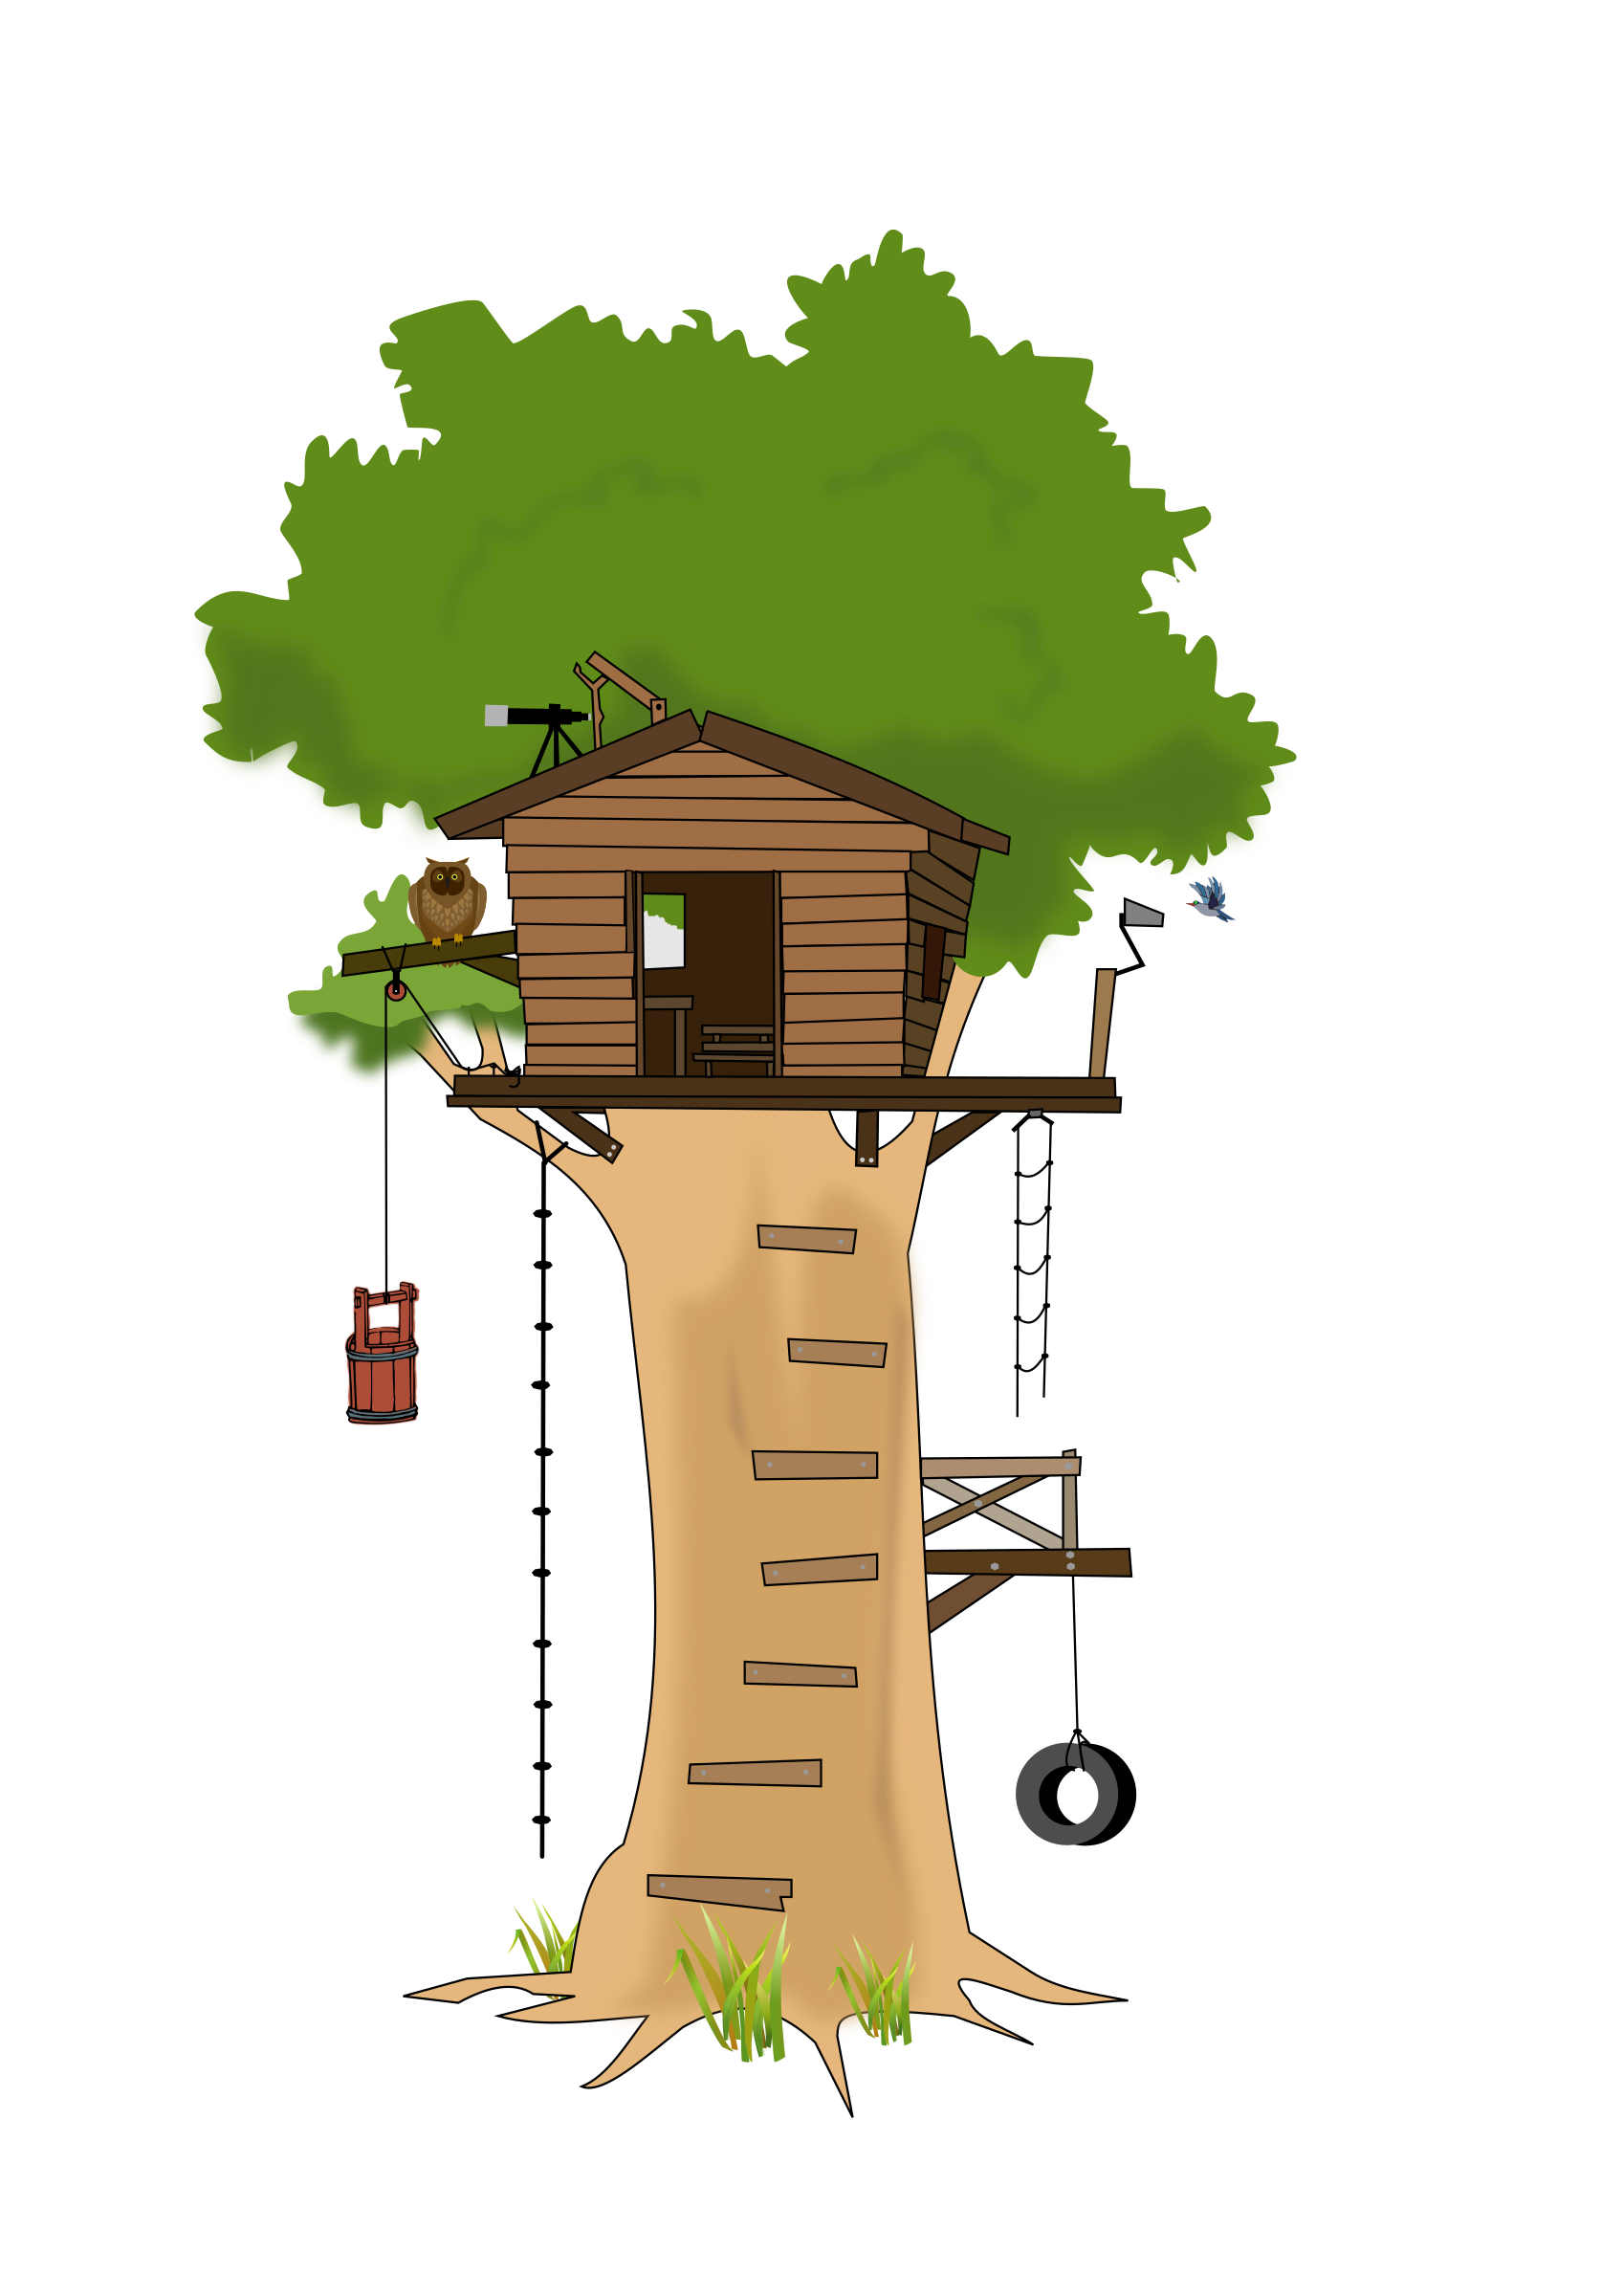 Clubhouse clipart tree house. Club big image png